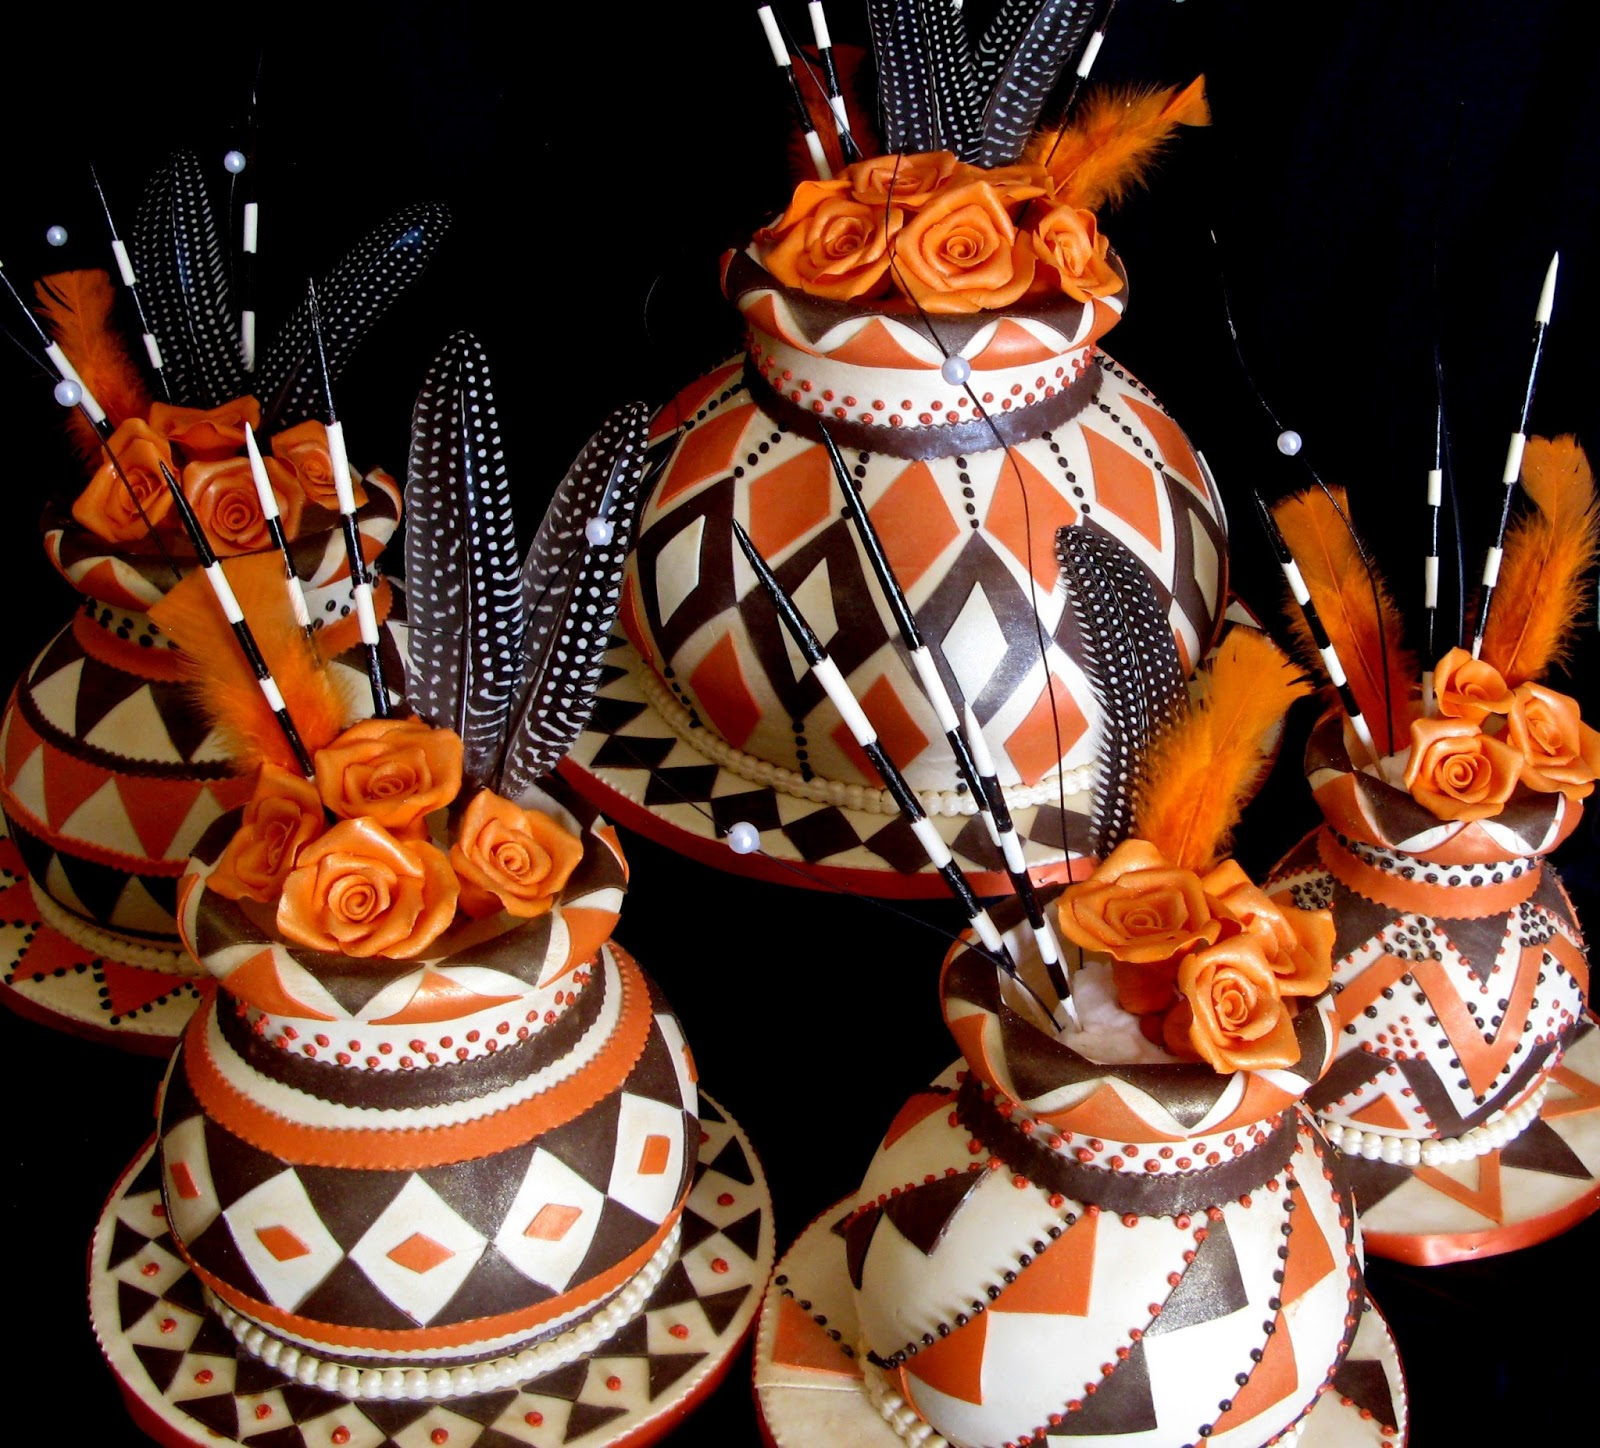 Fantastic African Traditional Basket - Traditional%2BAfrican%2Bwc%2Bb  Graphic_662545.JPG